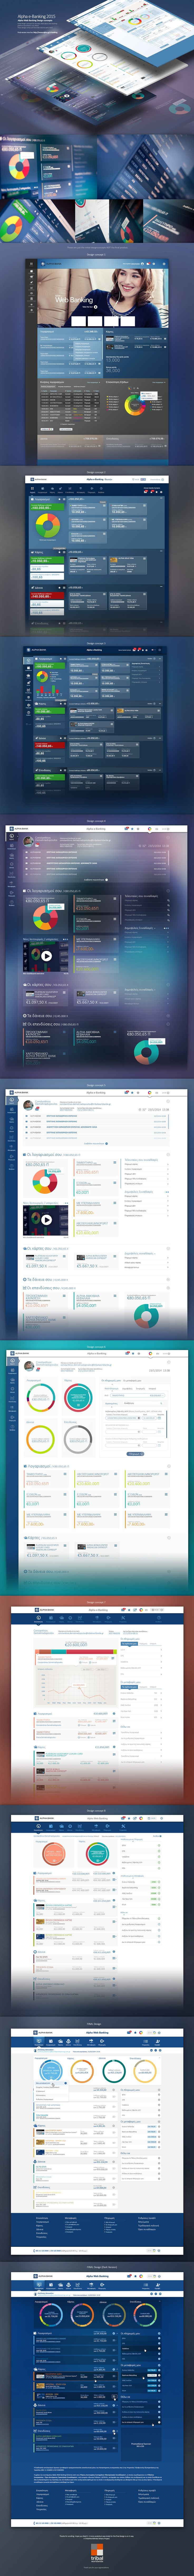 Alpha Web Banking - Design Process on Behance